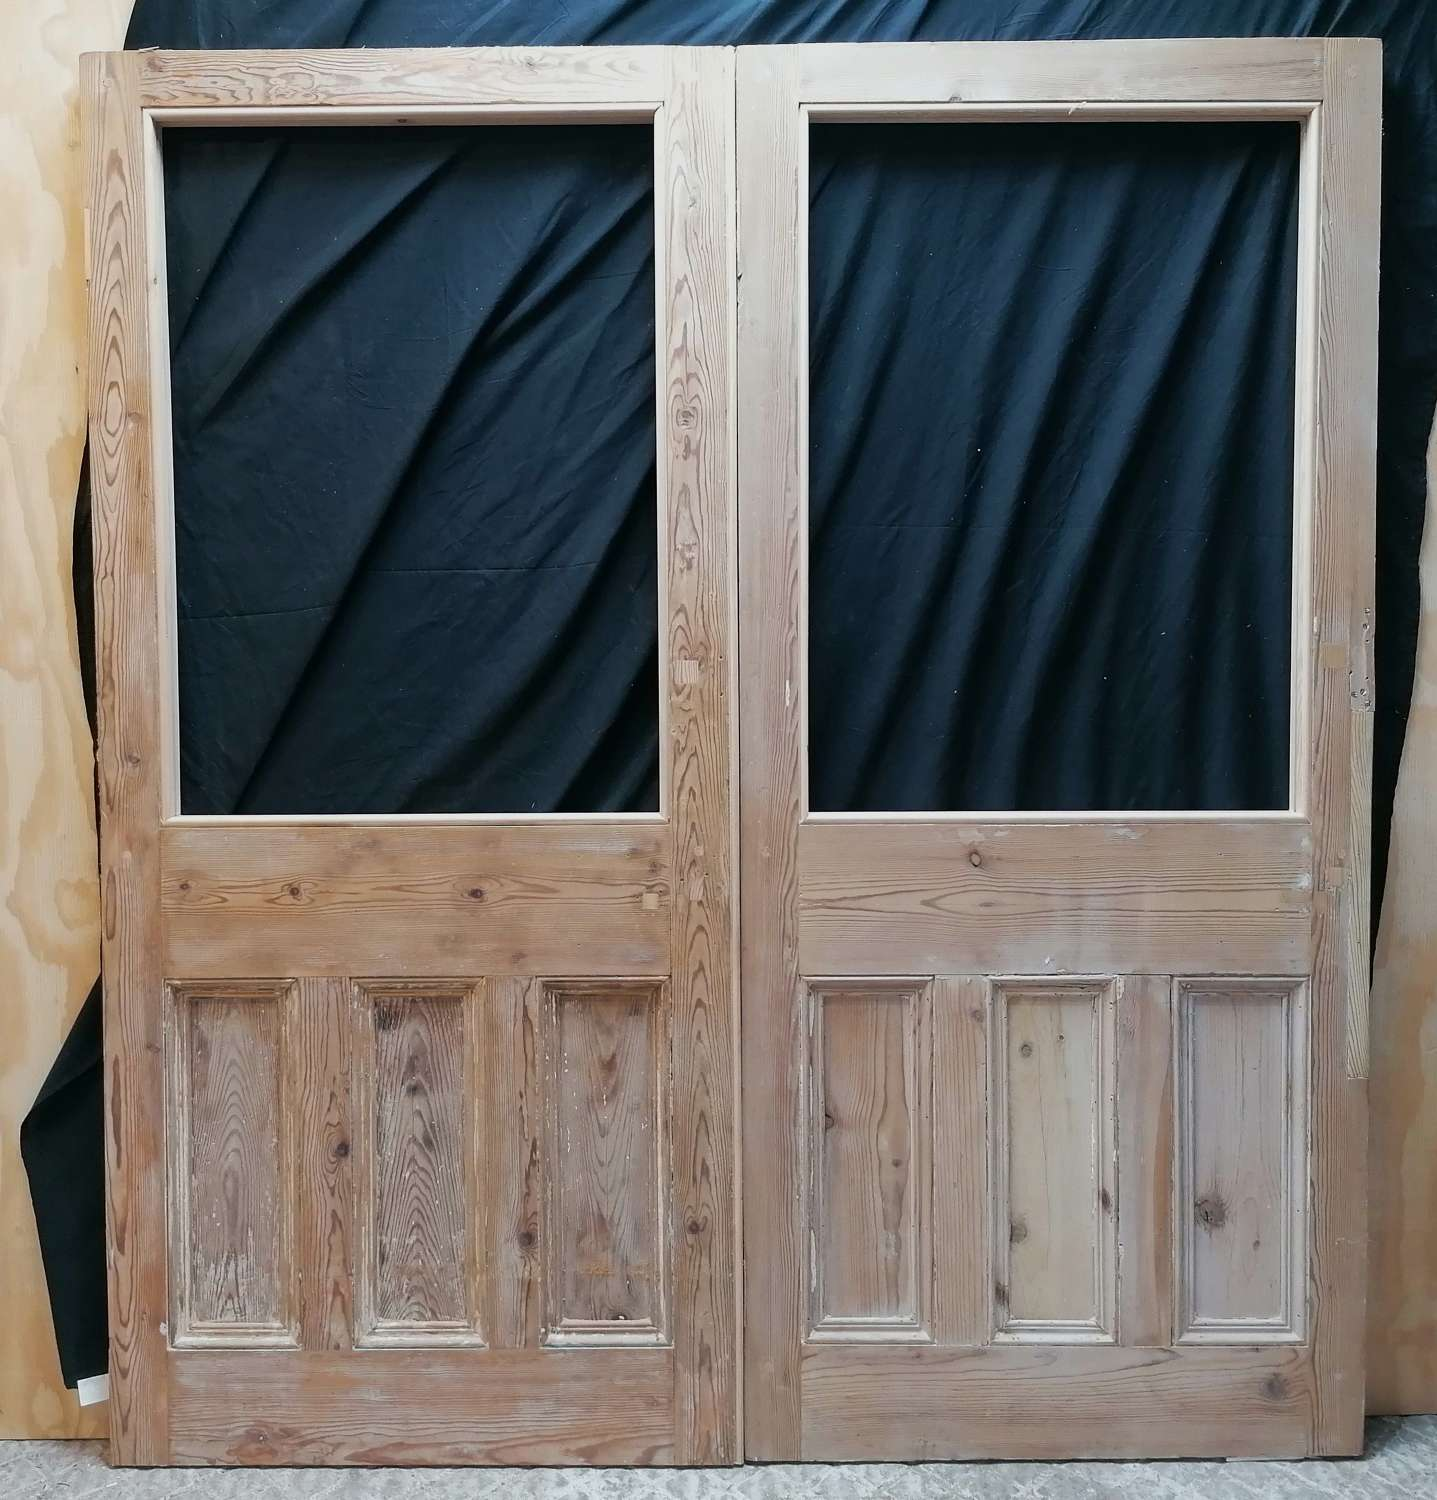 DP0304 A PAIR OF RECLAIMED STRIPPED PINE INTERNAL DOORS FOR GLAZING